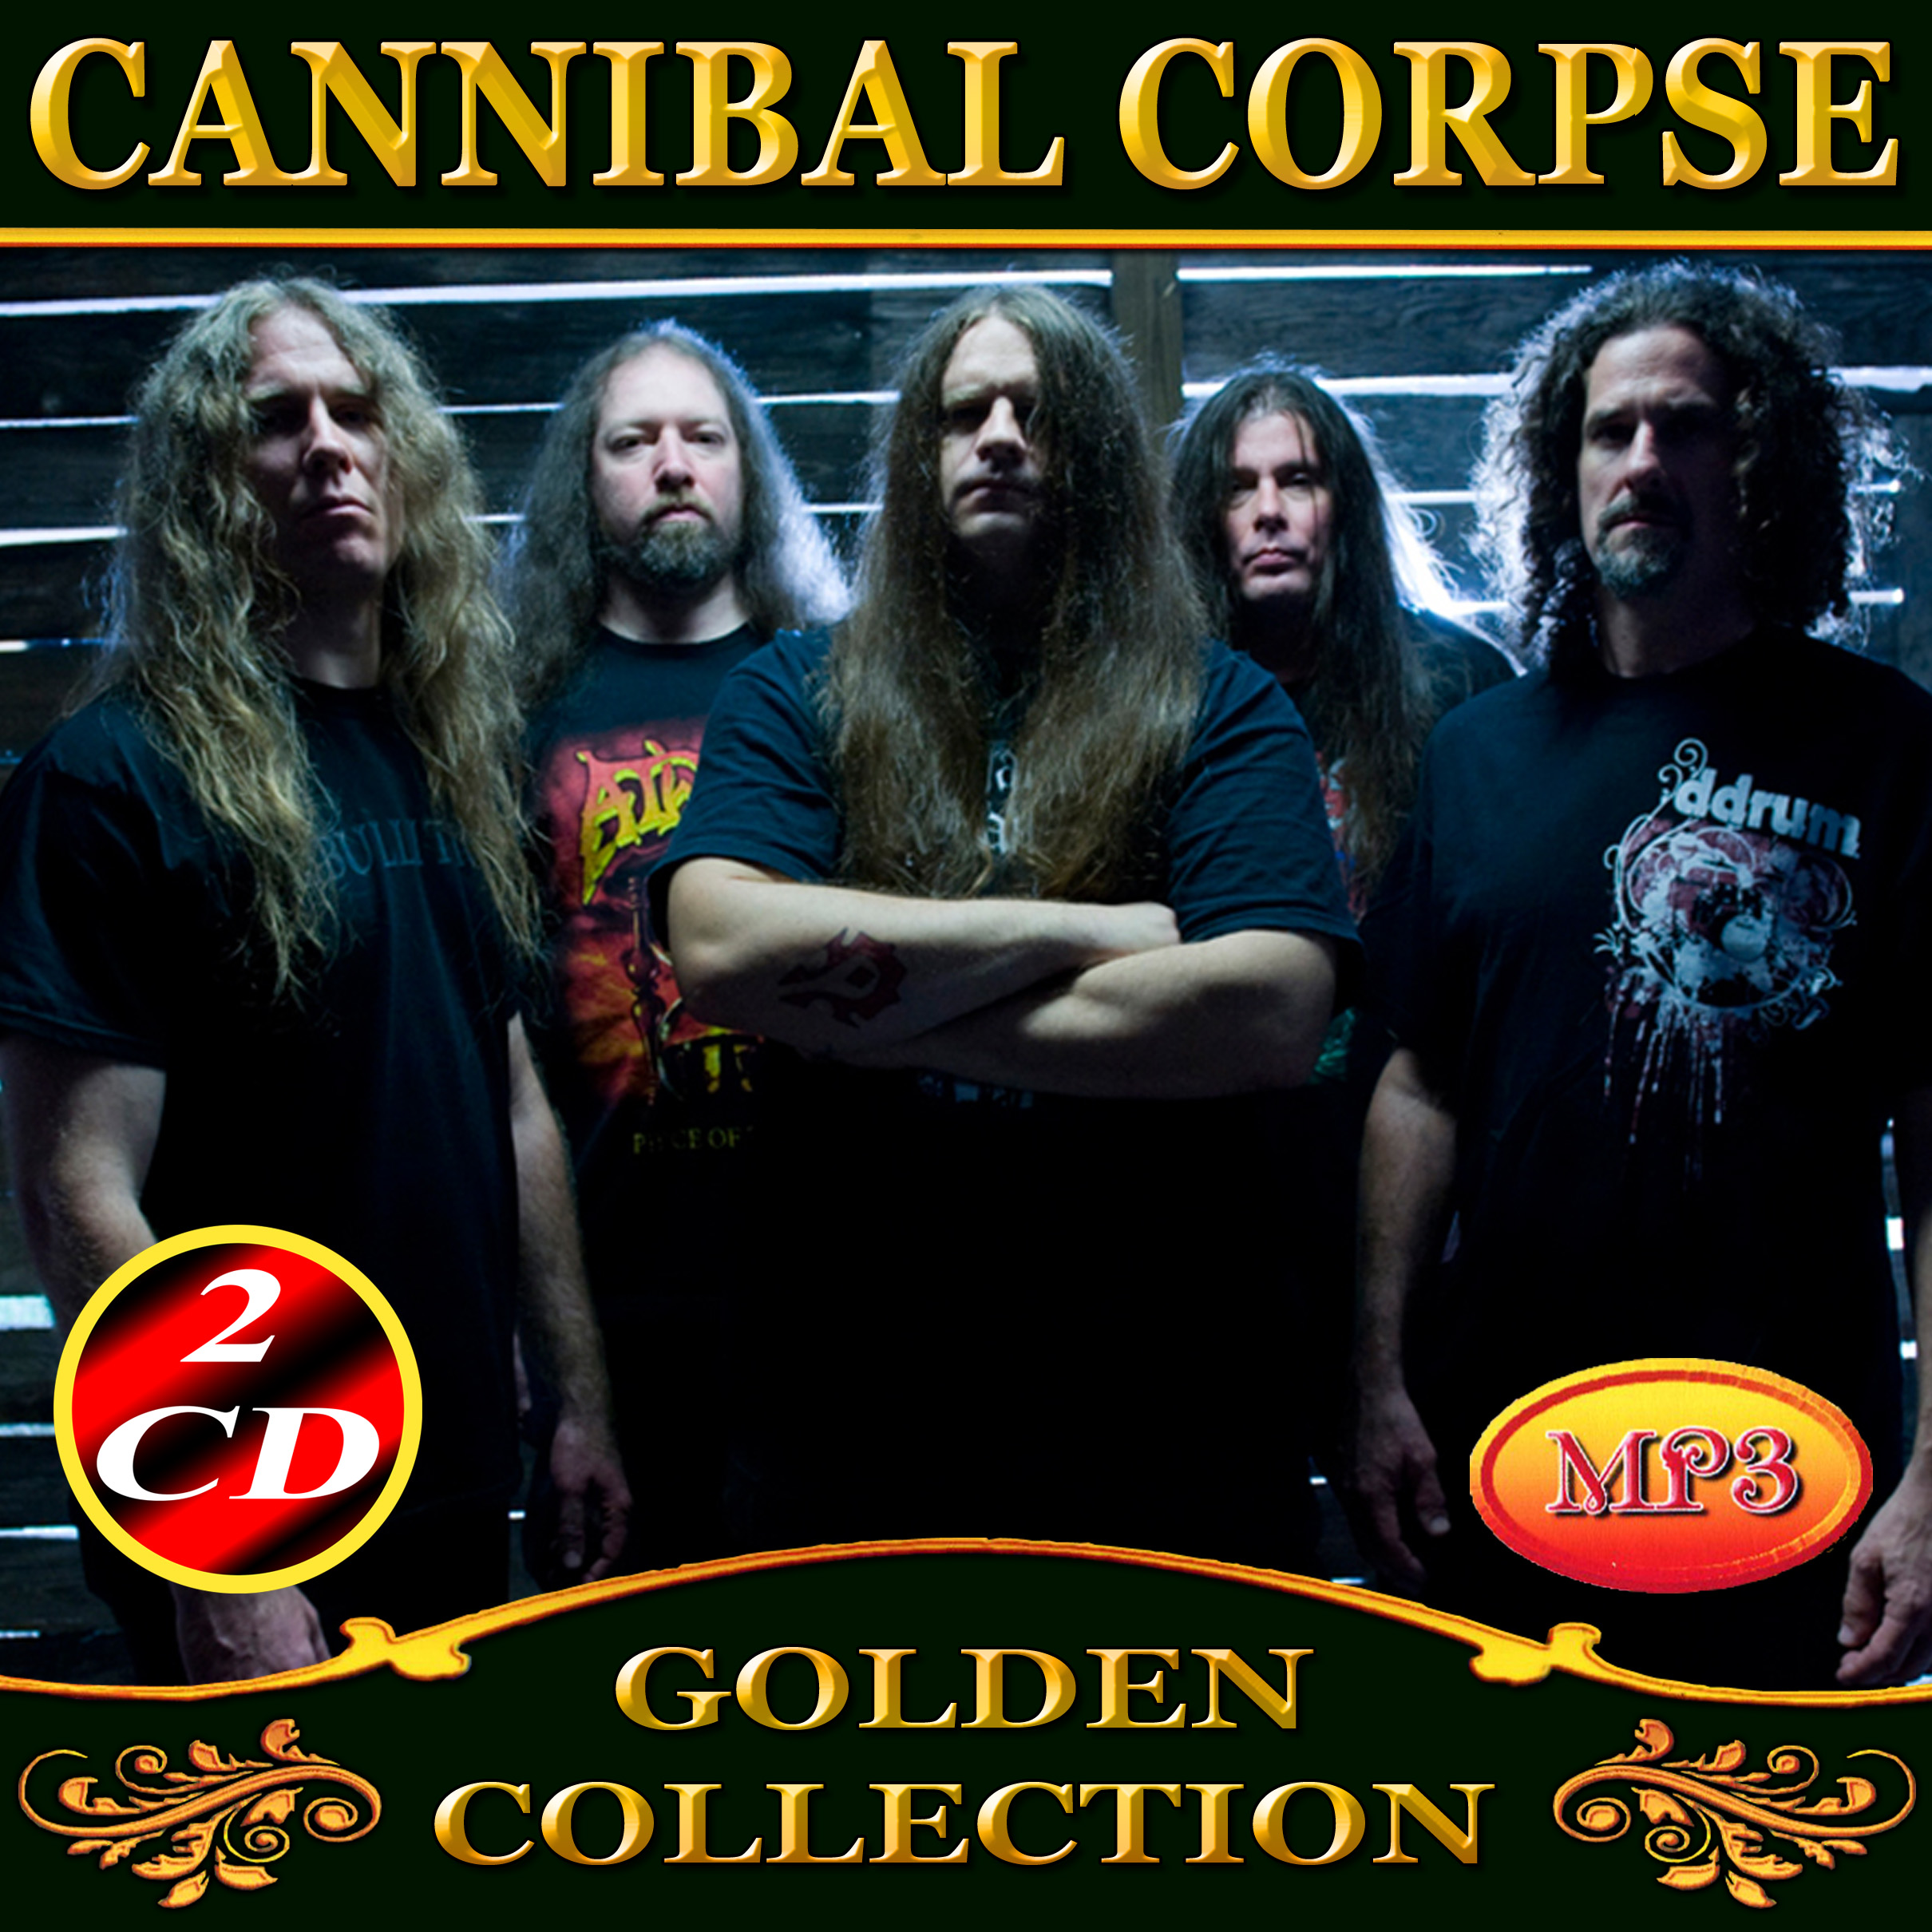 Cannibal Corpse 2cd [mp3]